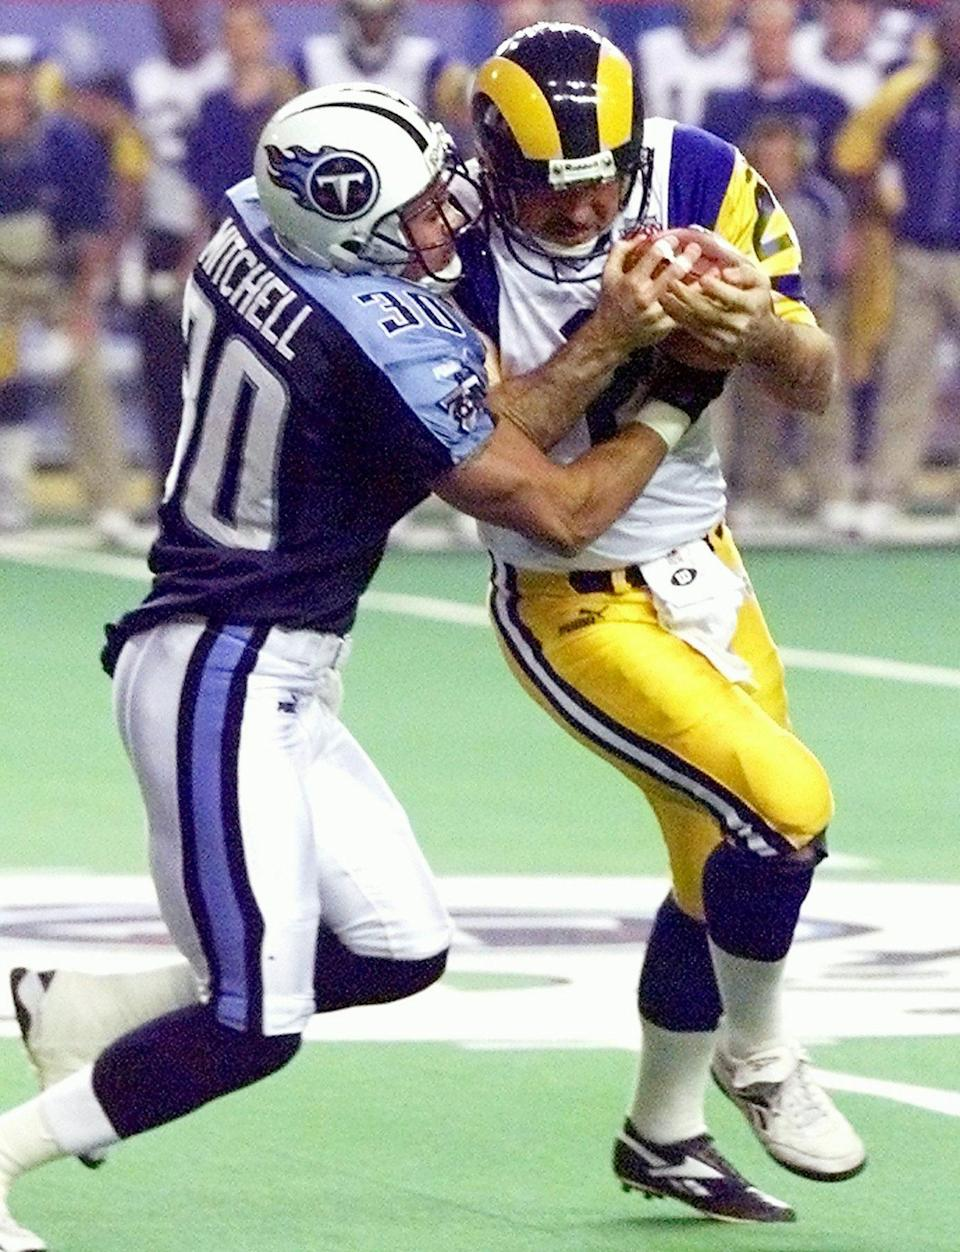 <p><strong>Age at the Time of Super Bowl XXXIV: </strong>40 years old </p> <p>The punter played in the St. Louis Rams' 2000 Super Bowl appearance.</p>